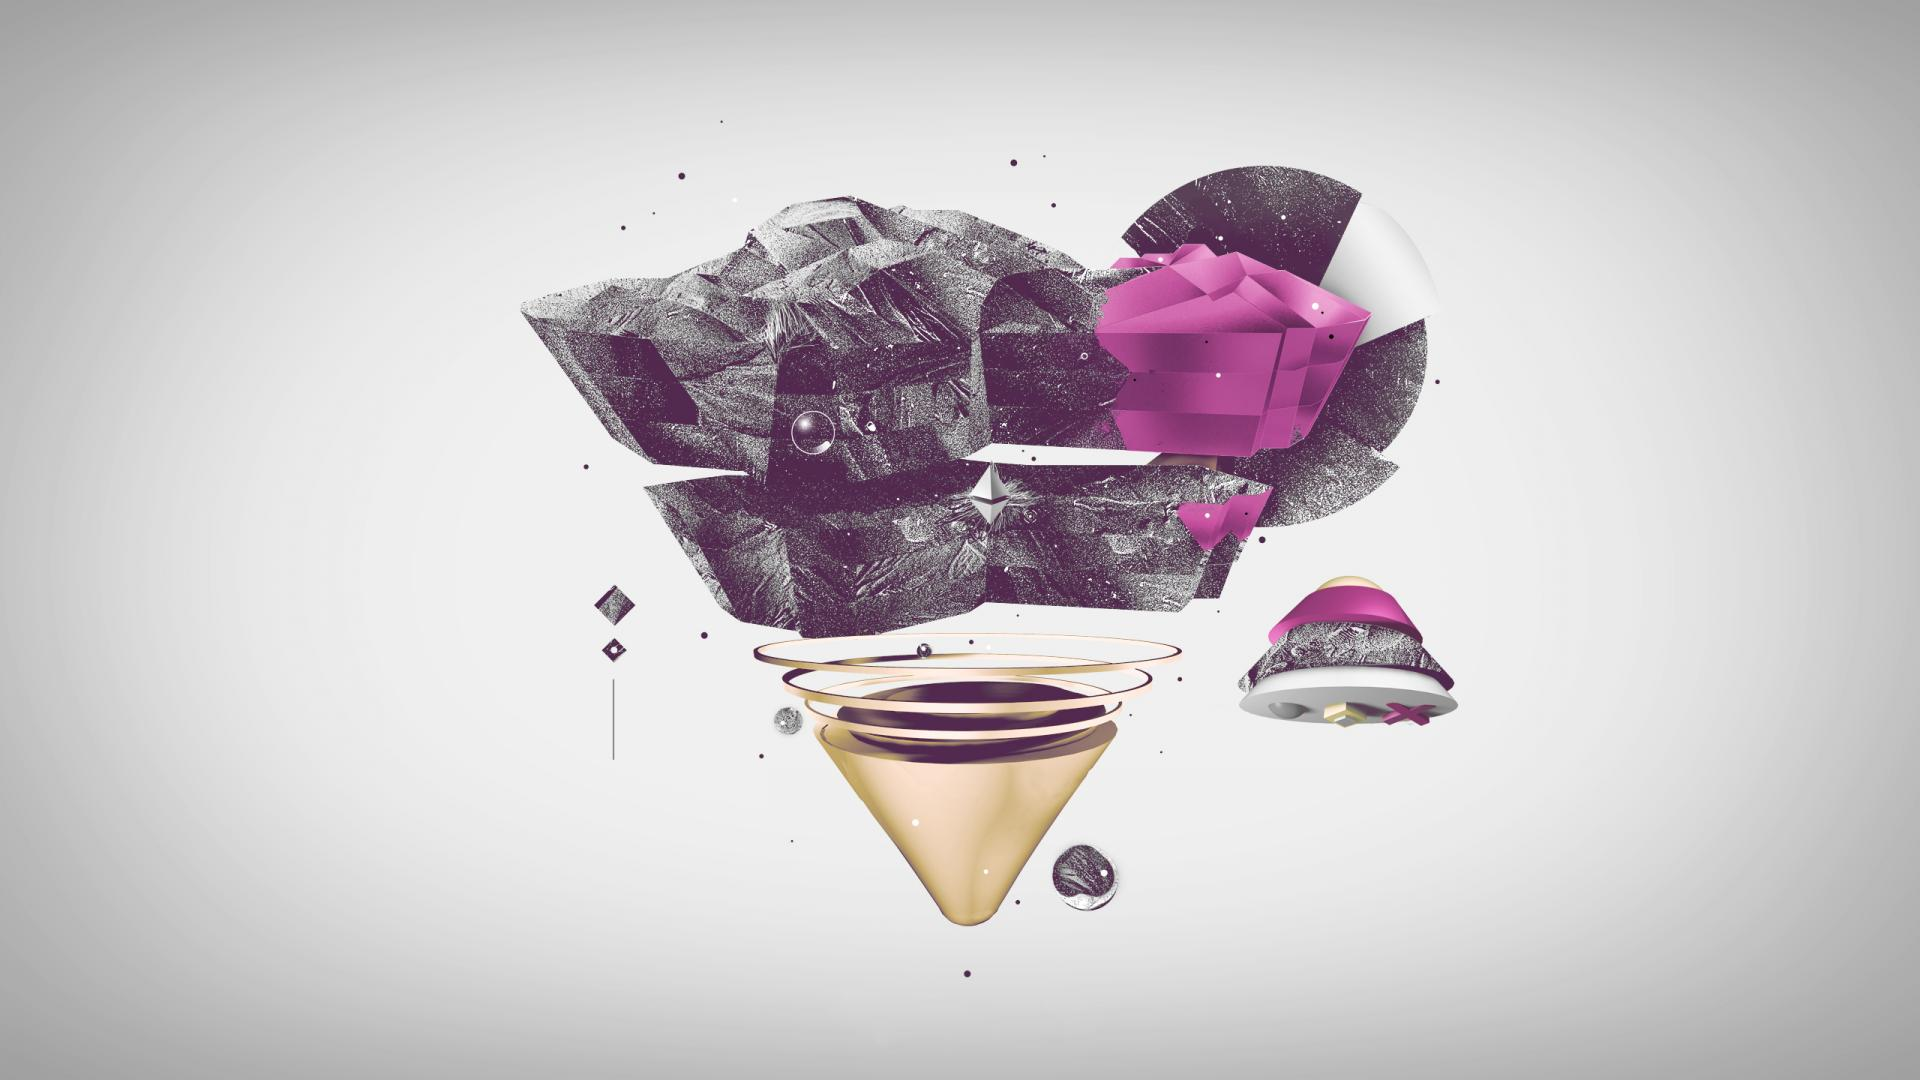 Cool Wallpaper Horse Abstract - tumblr_static_triangle-pyramid-black-pink-hd-148949  Best Photo Reference_305425.jpg